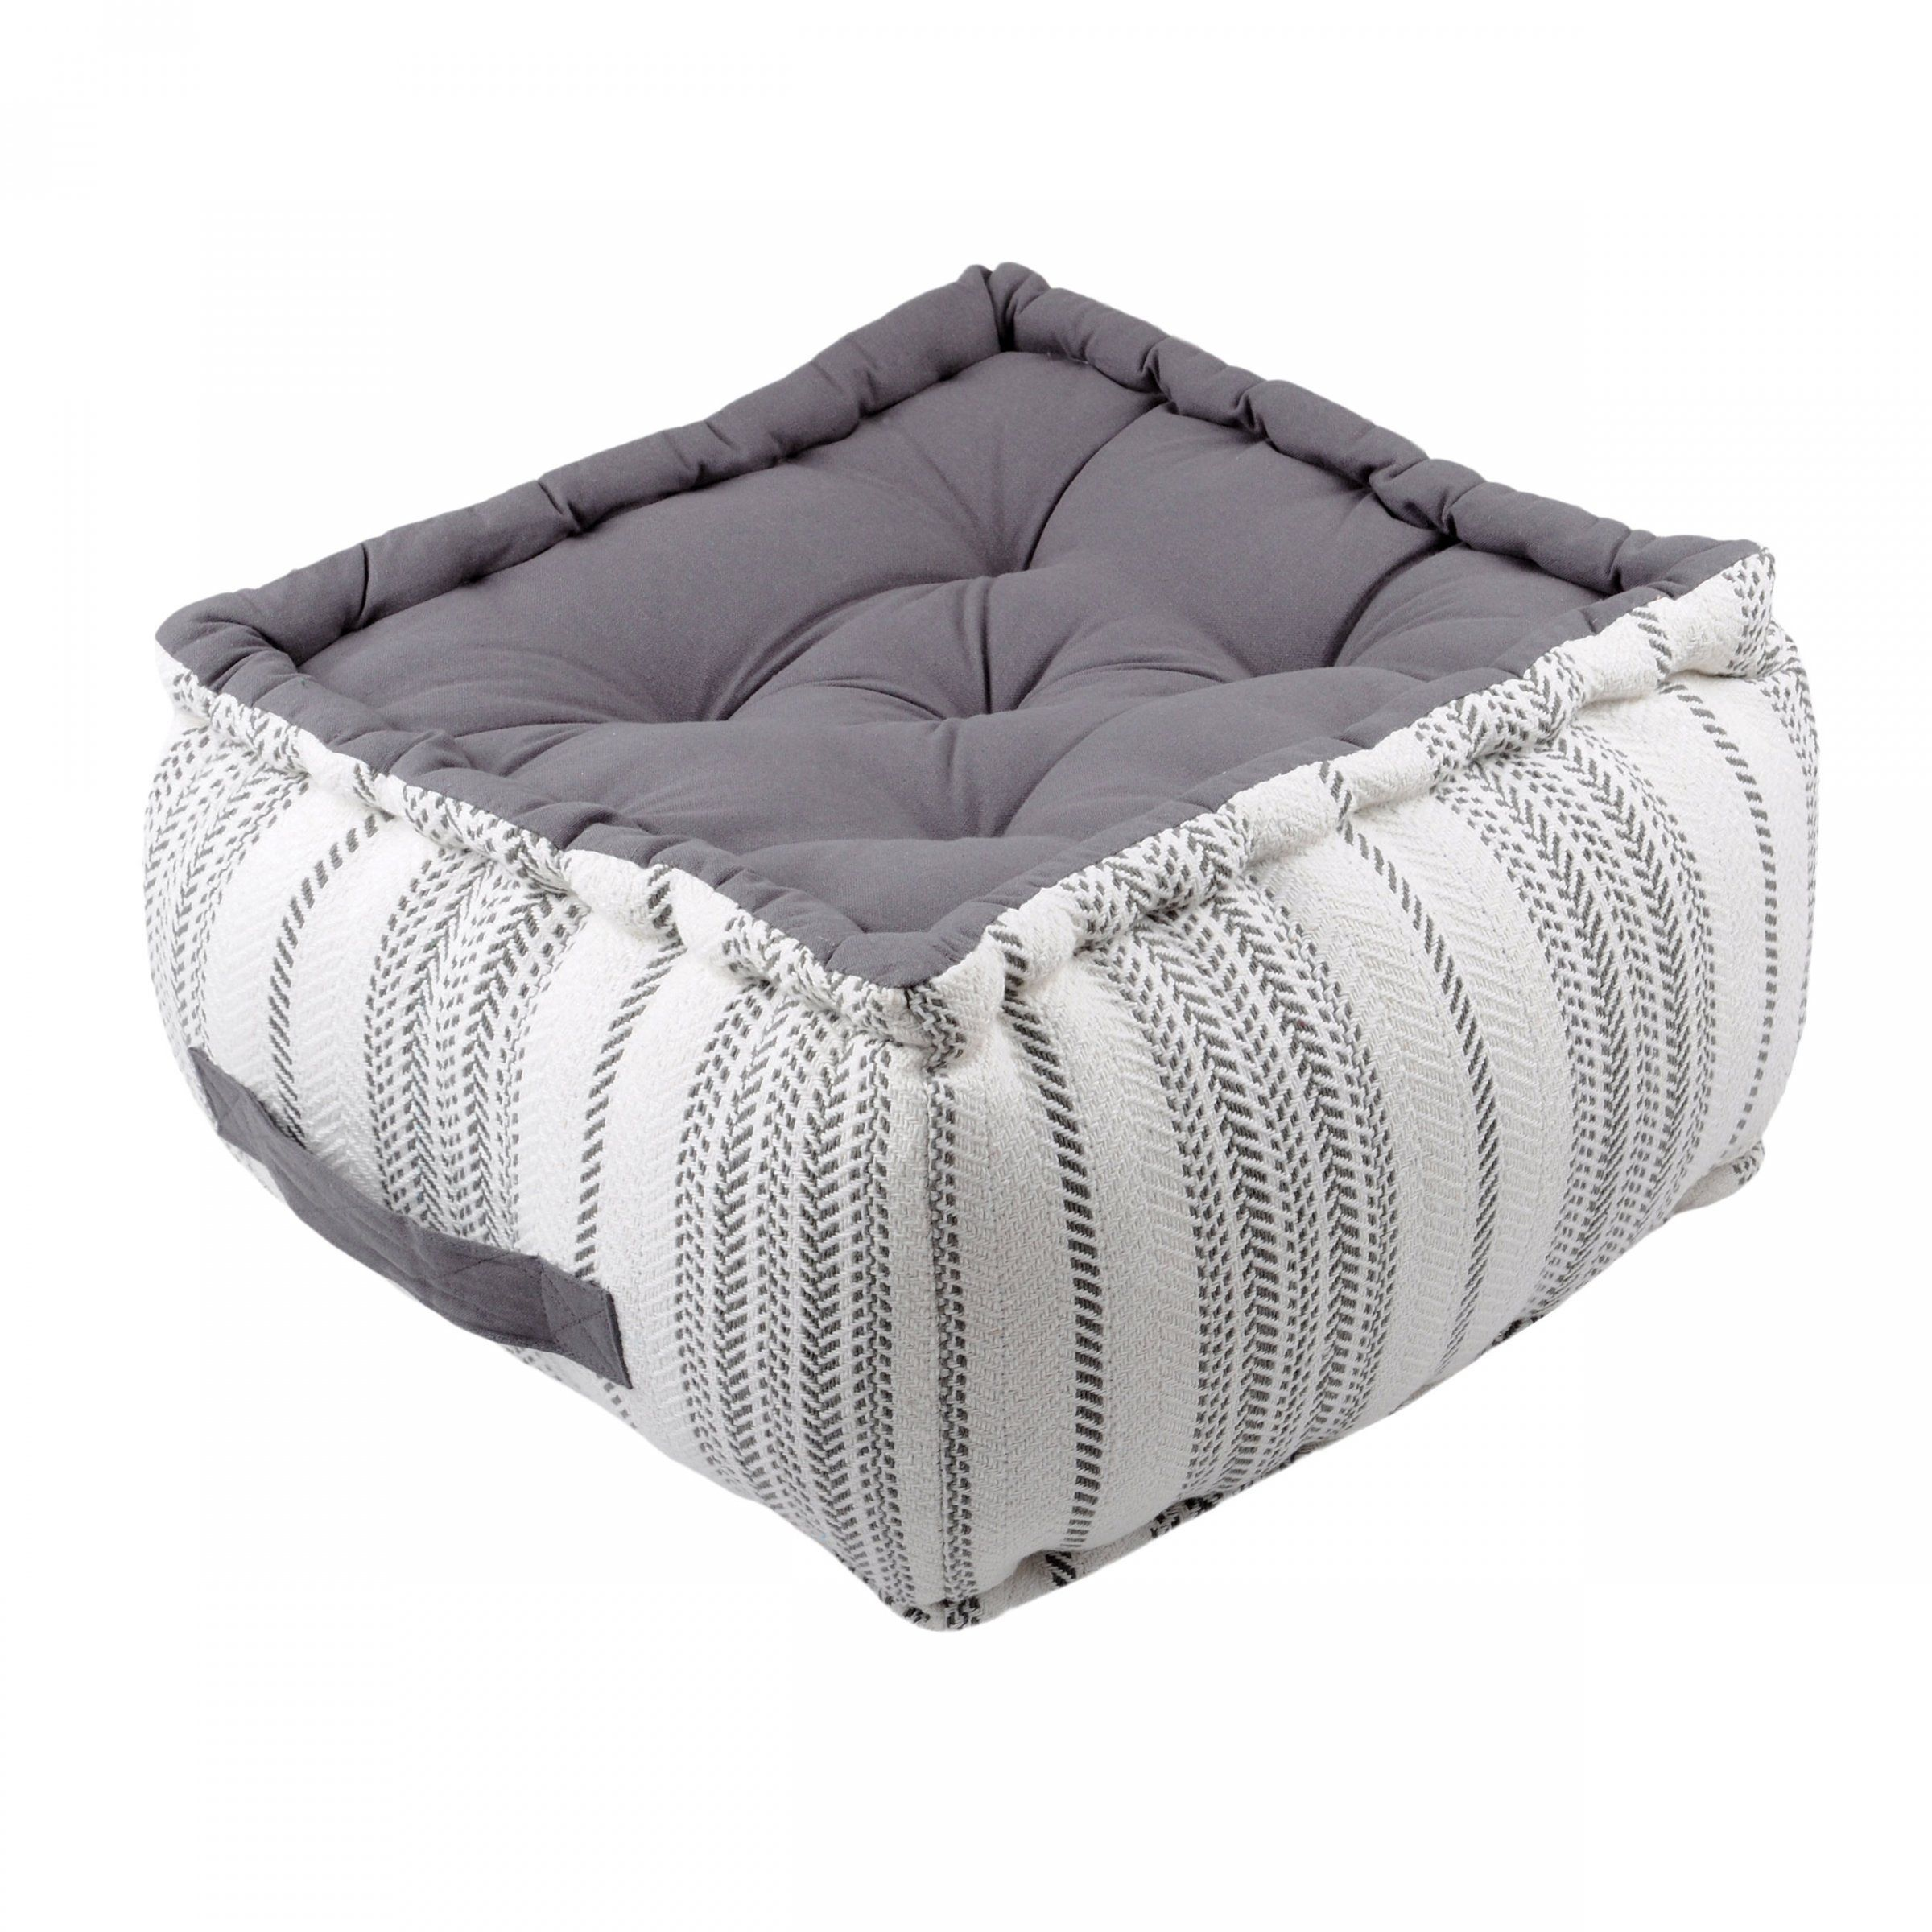 coussin de sol pouf 40 cm valdavia coussin de sol et pouf eminza. Black Bedroom Furniture Sets. Home Design Ideas